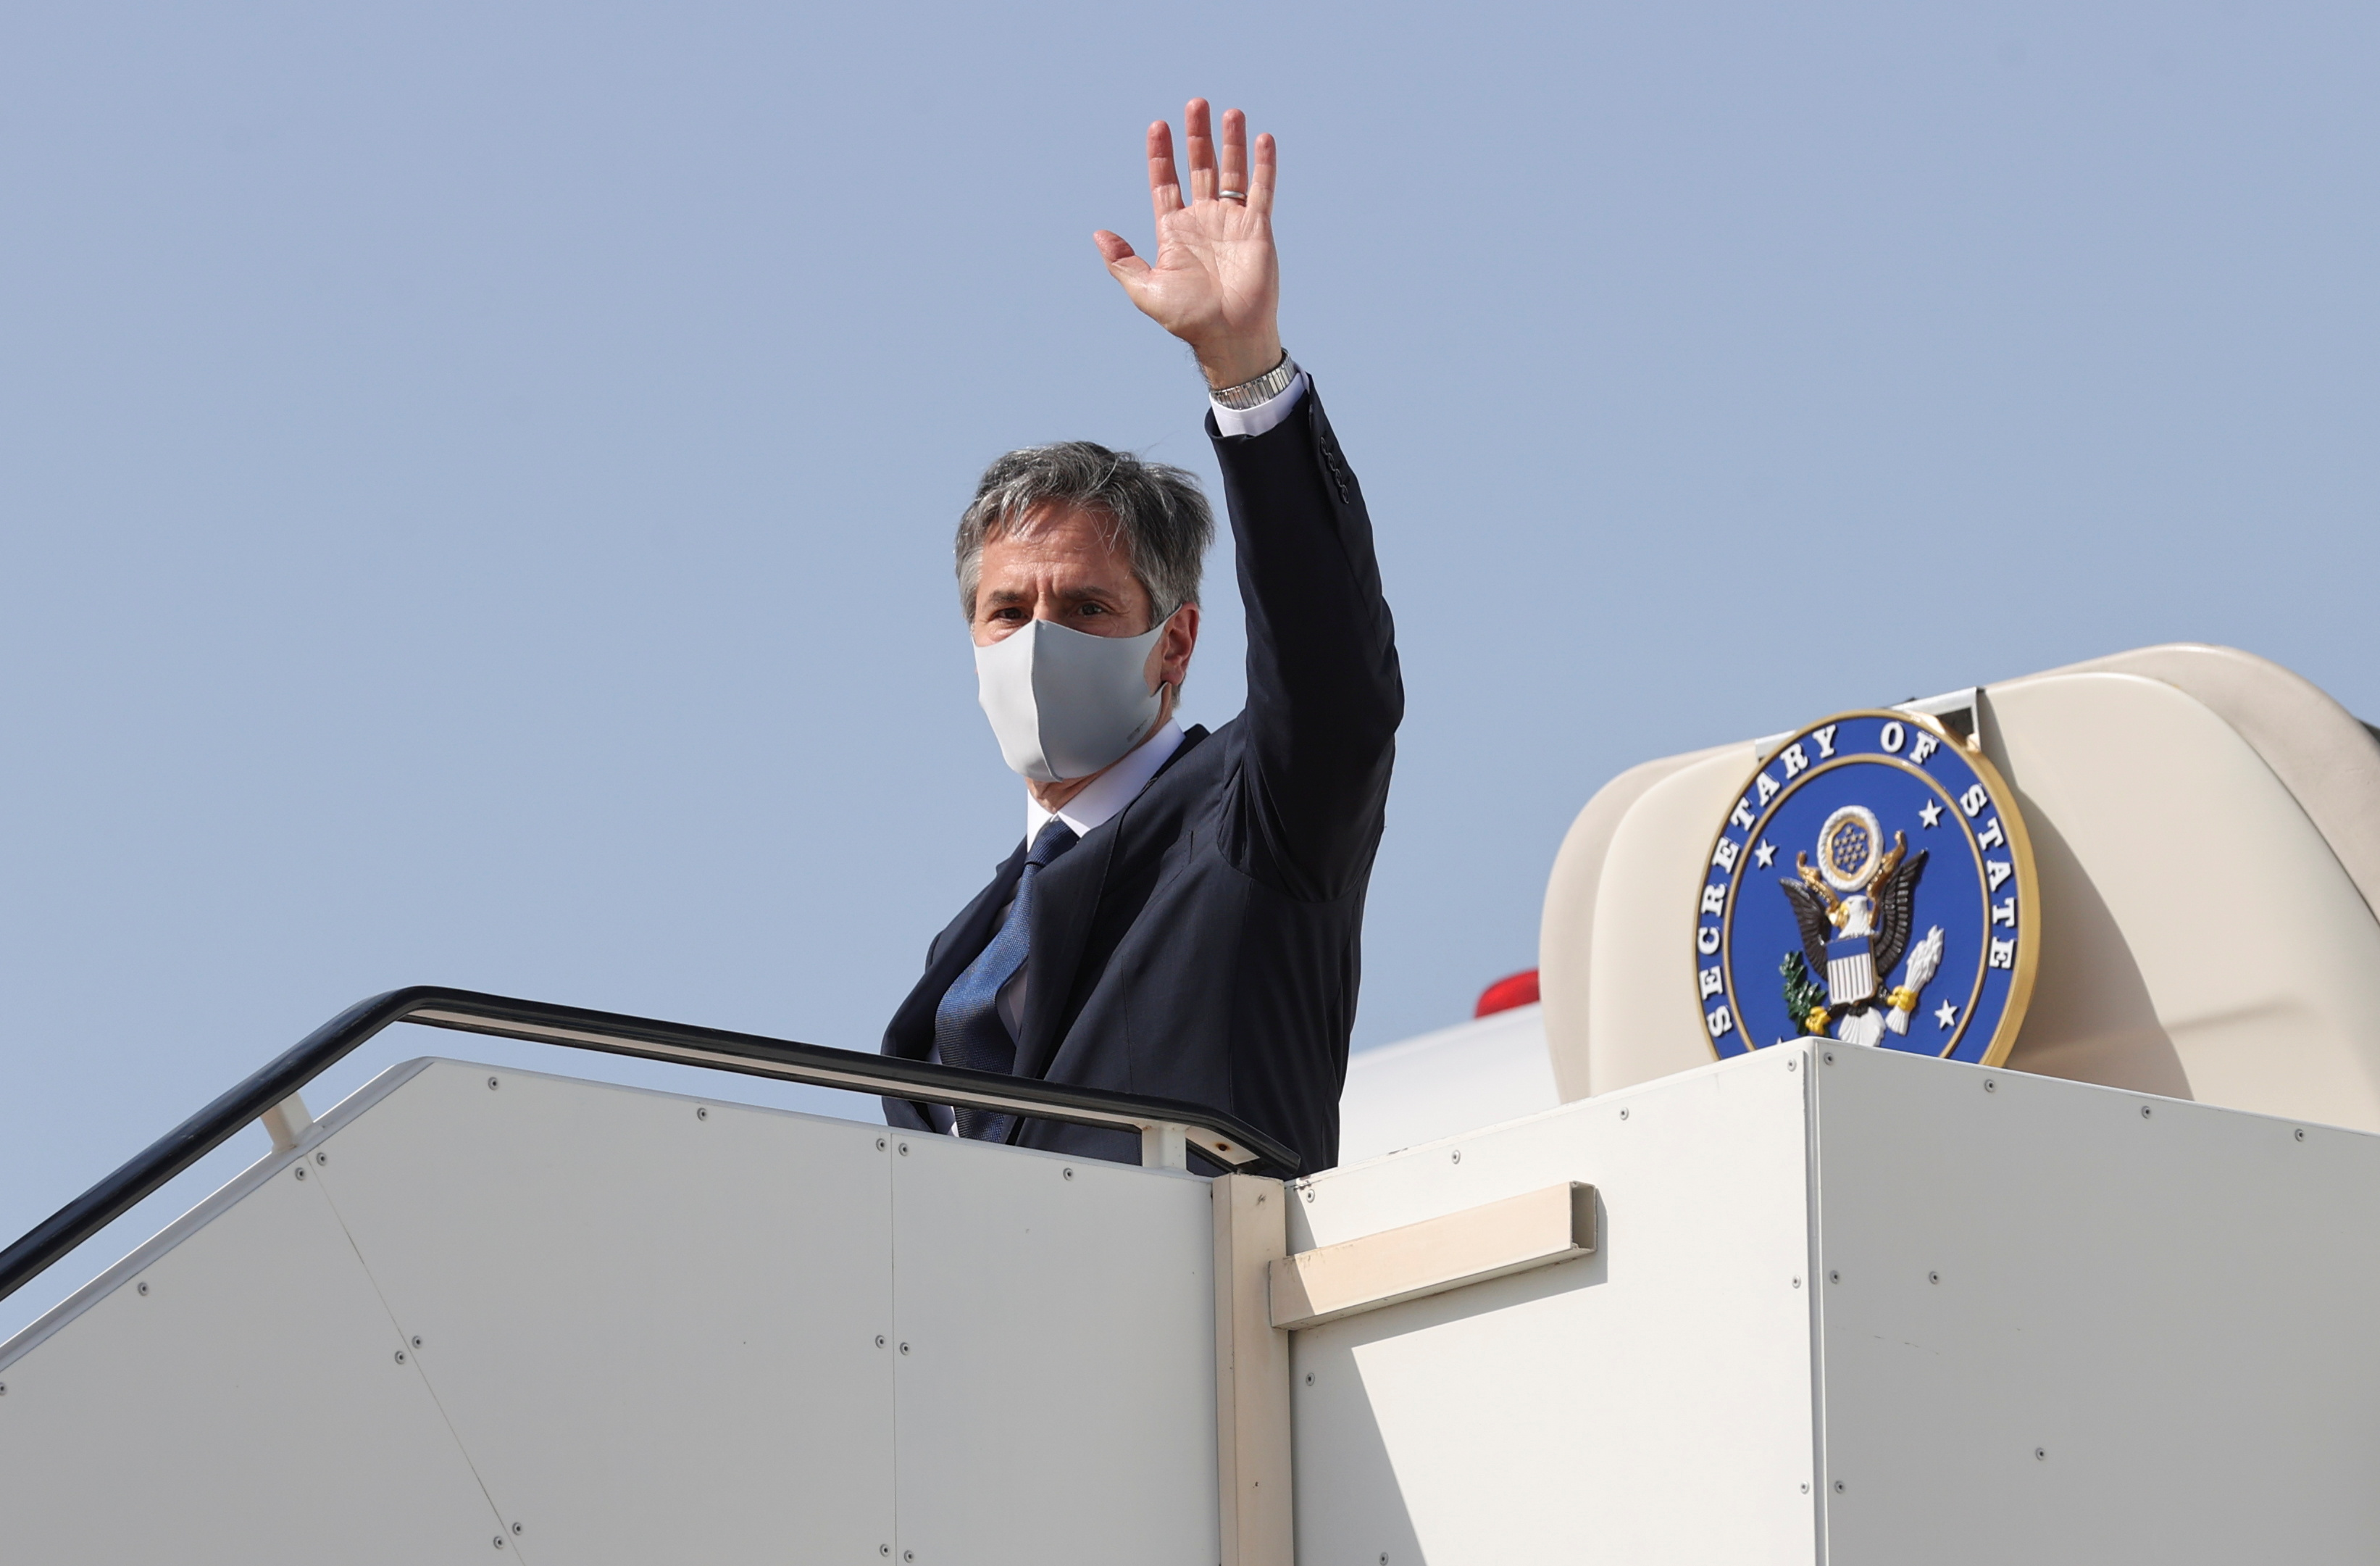 U.S. Secretary of State Antony Blinken boards his plane to depart for his return to the United States from Kuwait International Airport in Kuwait City, Kuwait, July 29, 2021. REUTERS/Jonathan Ernst/Pool